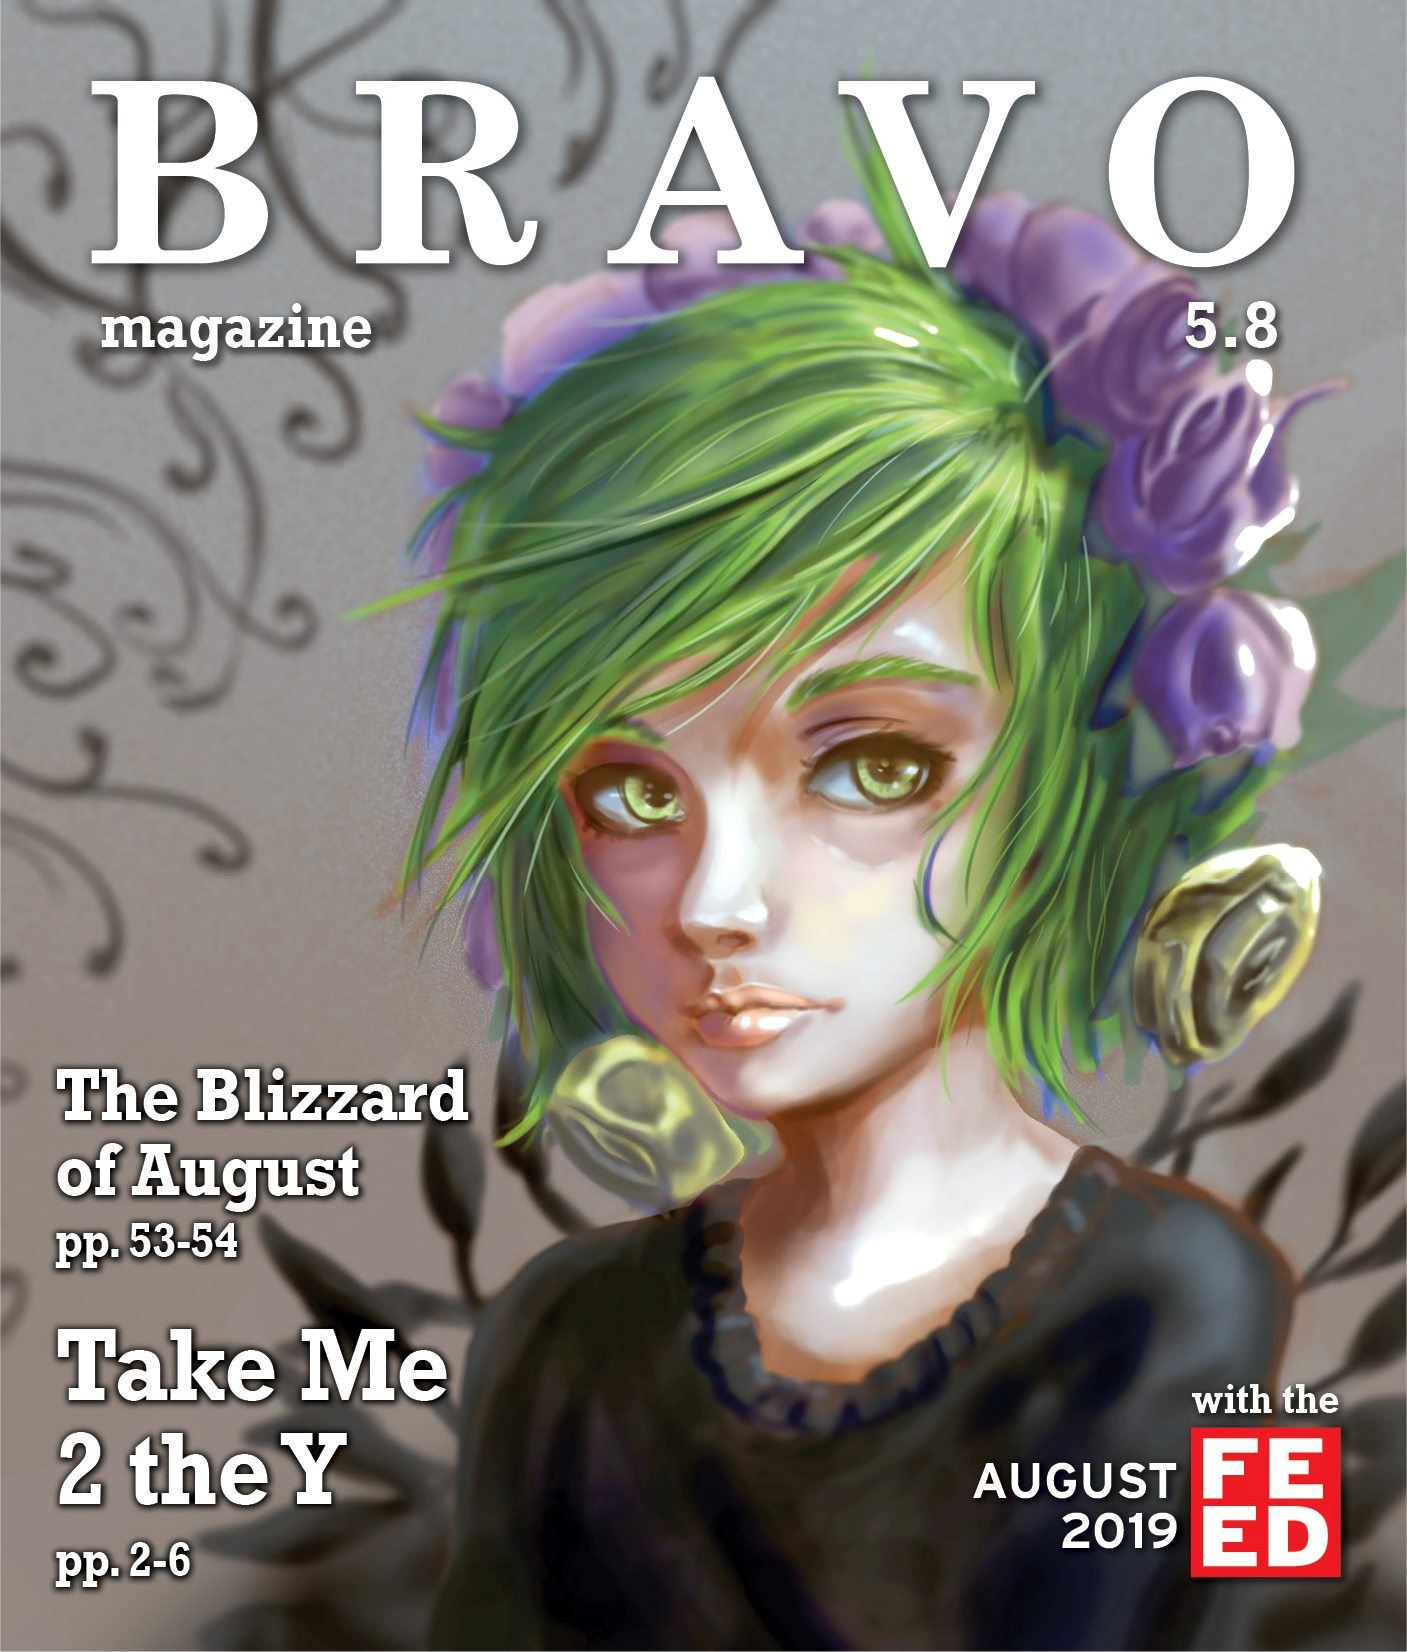 August 2019 Cover. Drawing of a girl with green hair